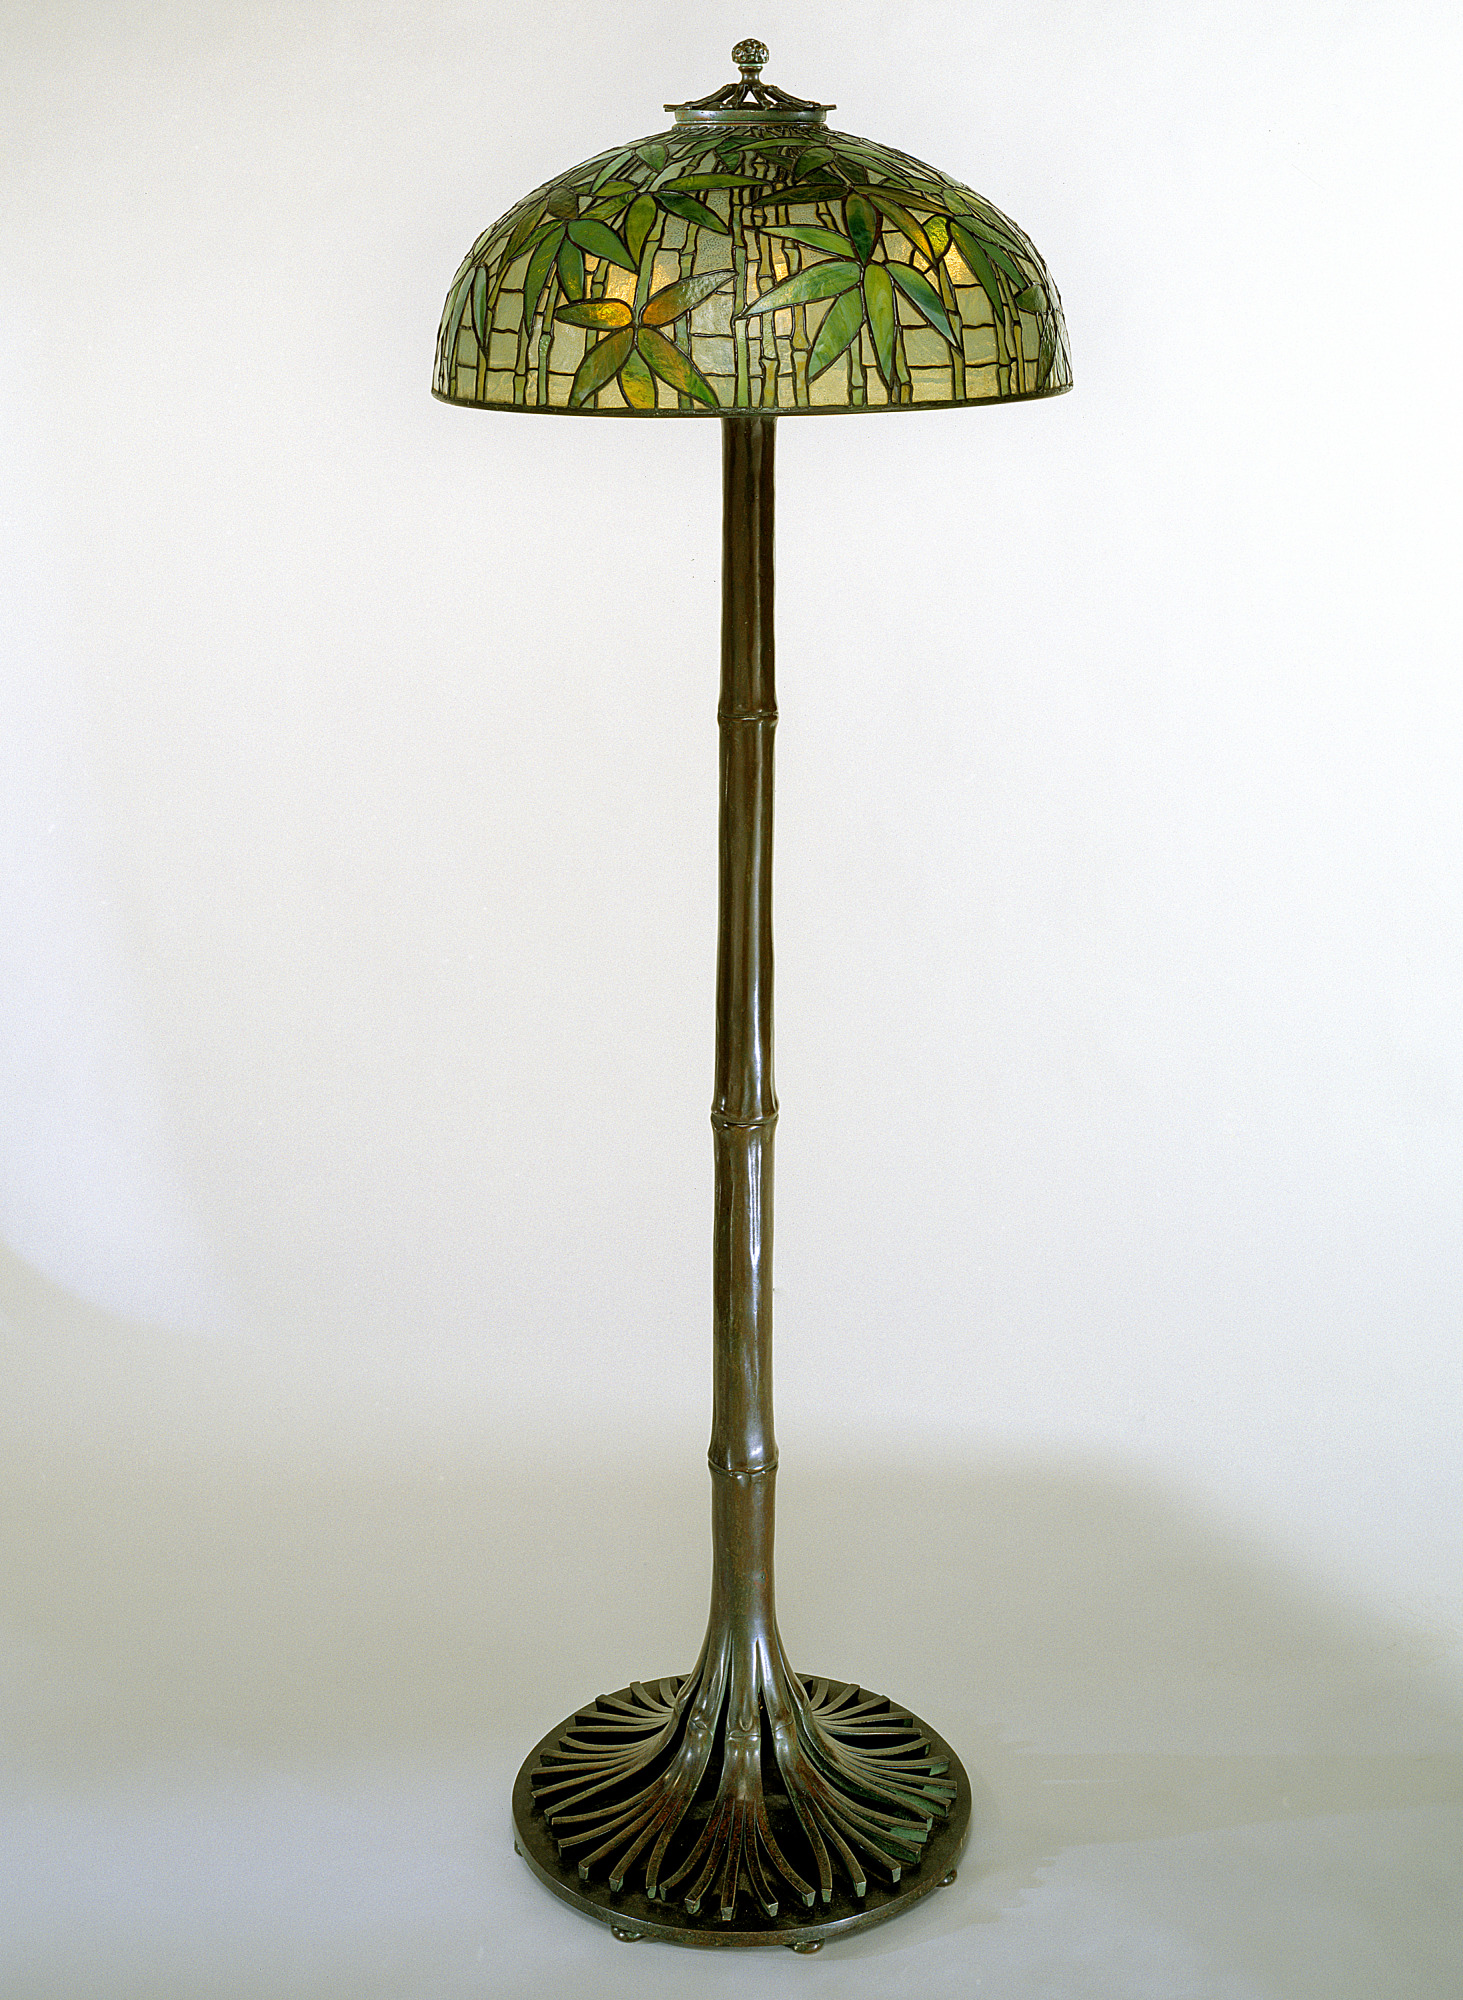 images for Tiffany Floor Lamp